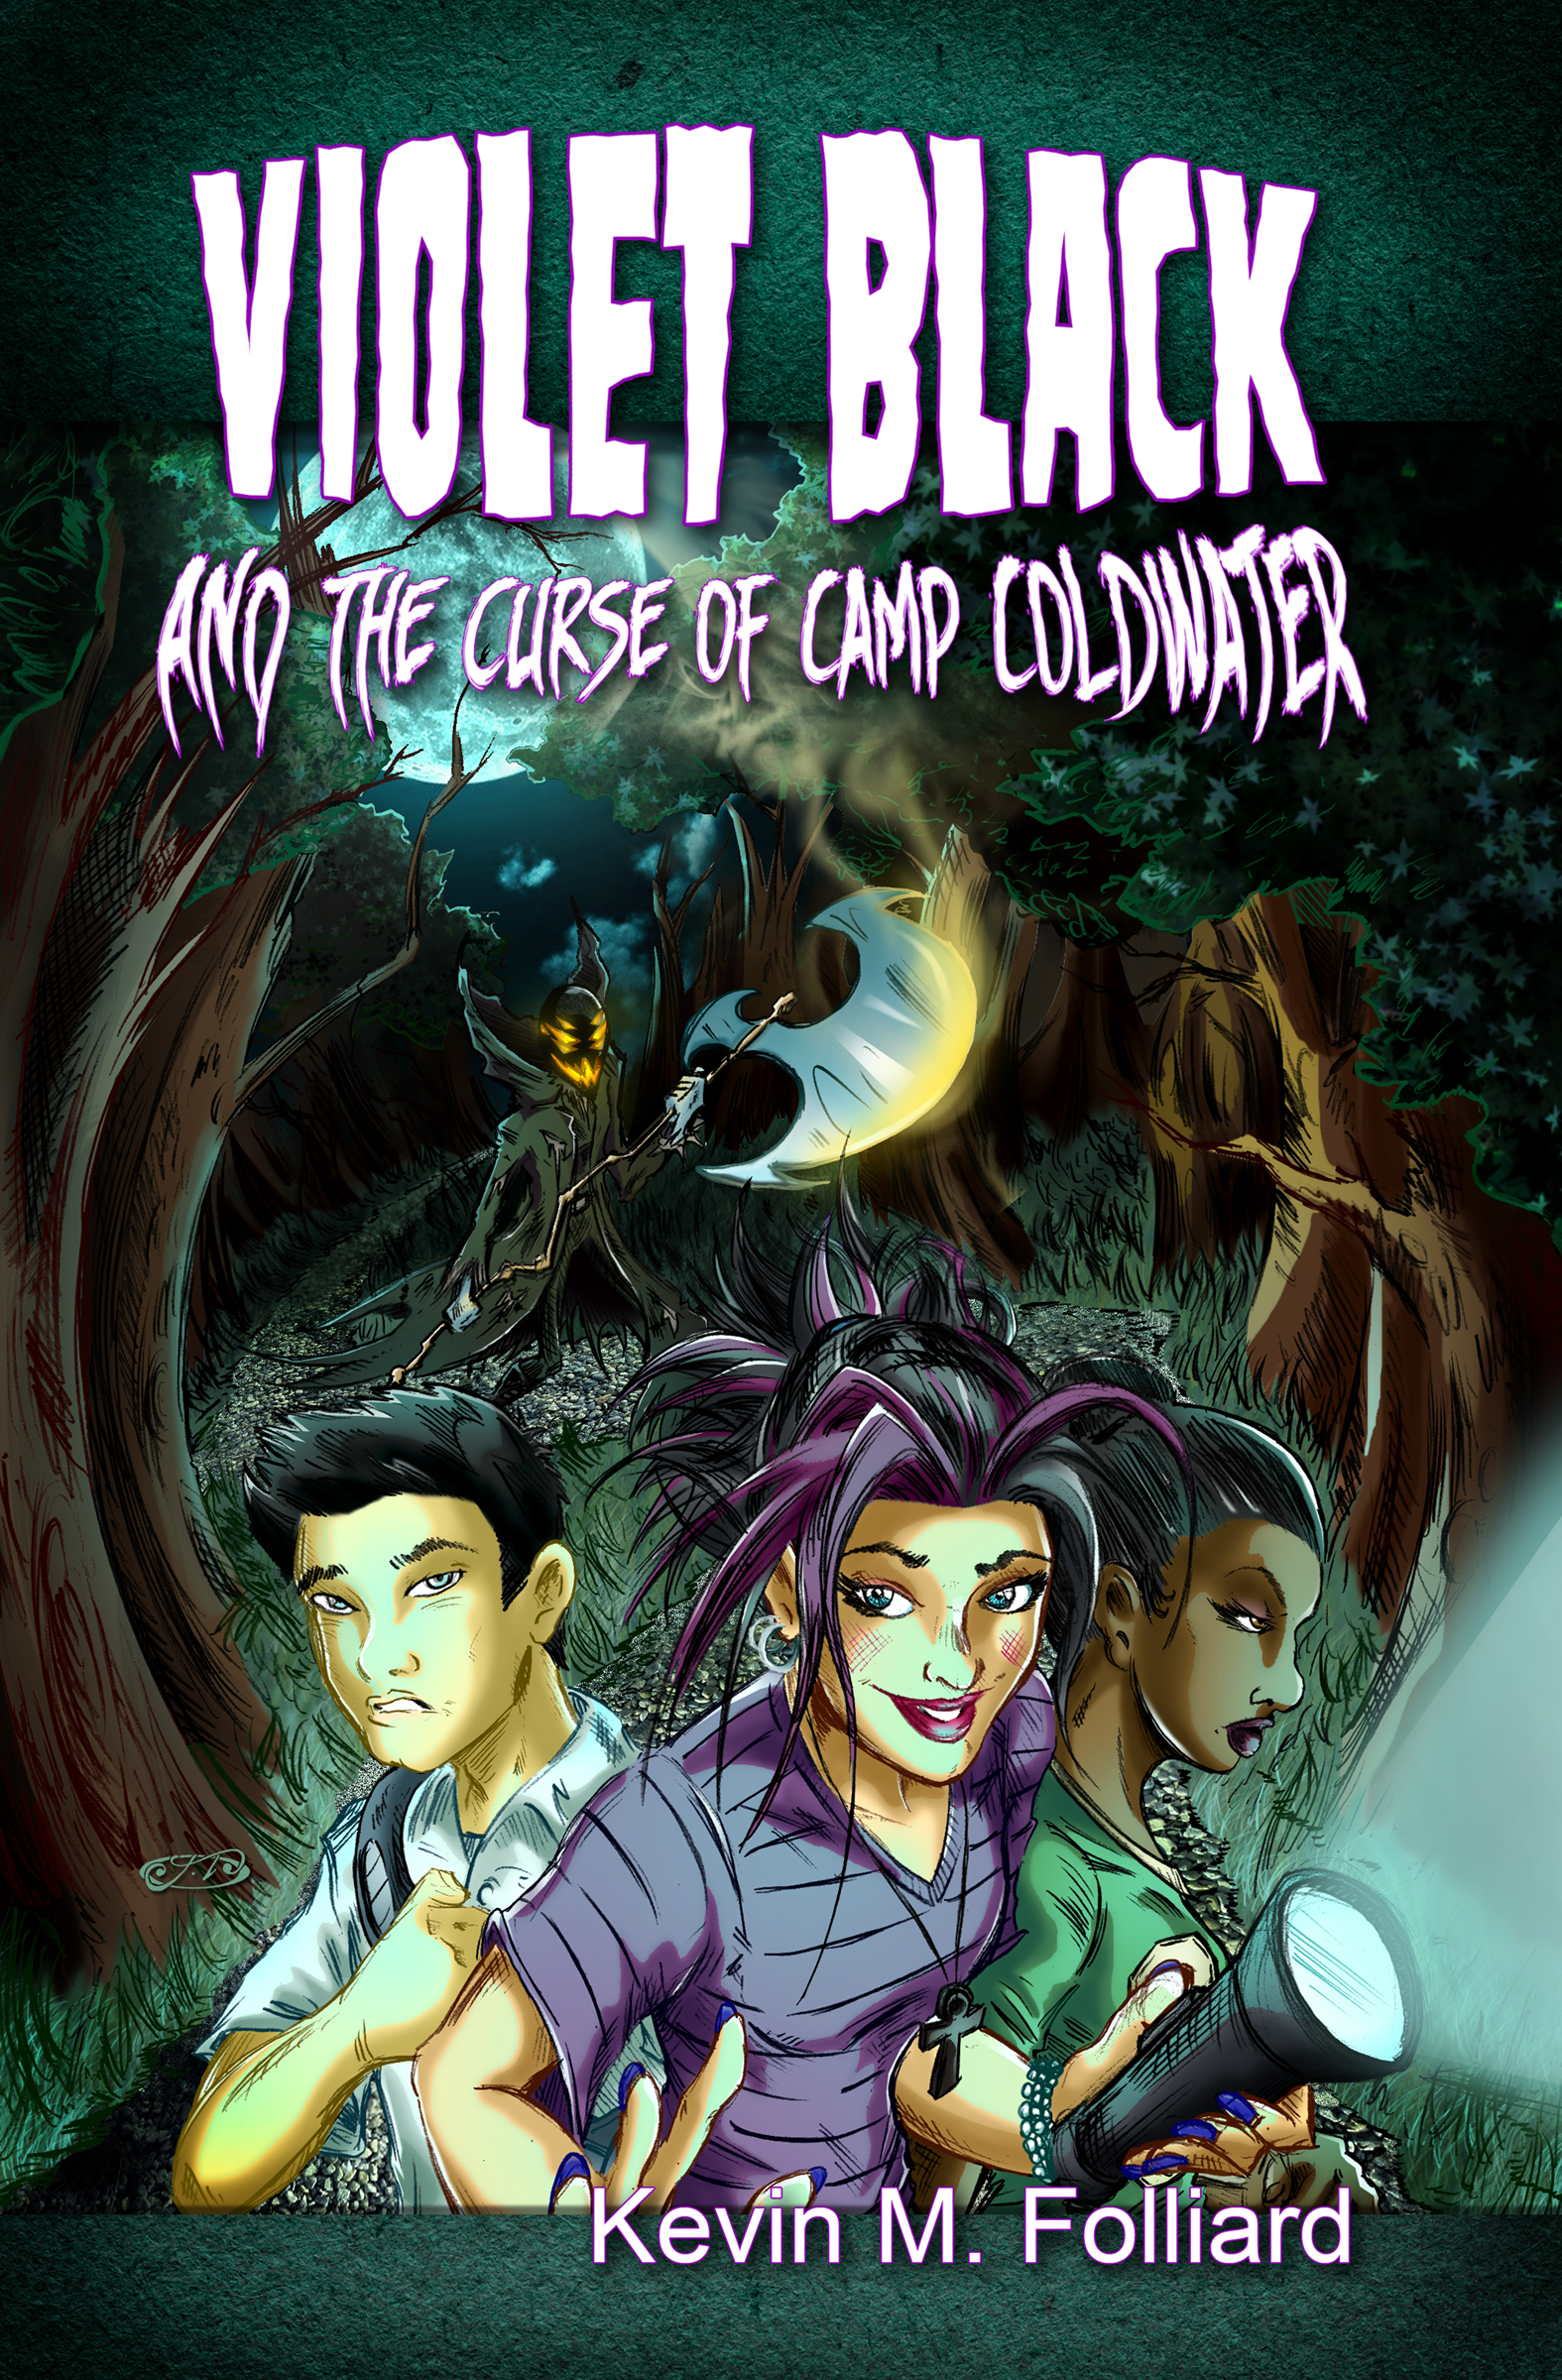 Violet Black and the Curse of Camp Coldwater